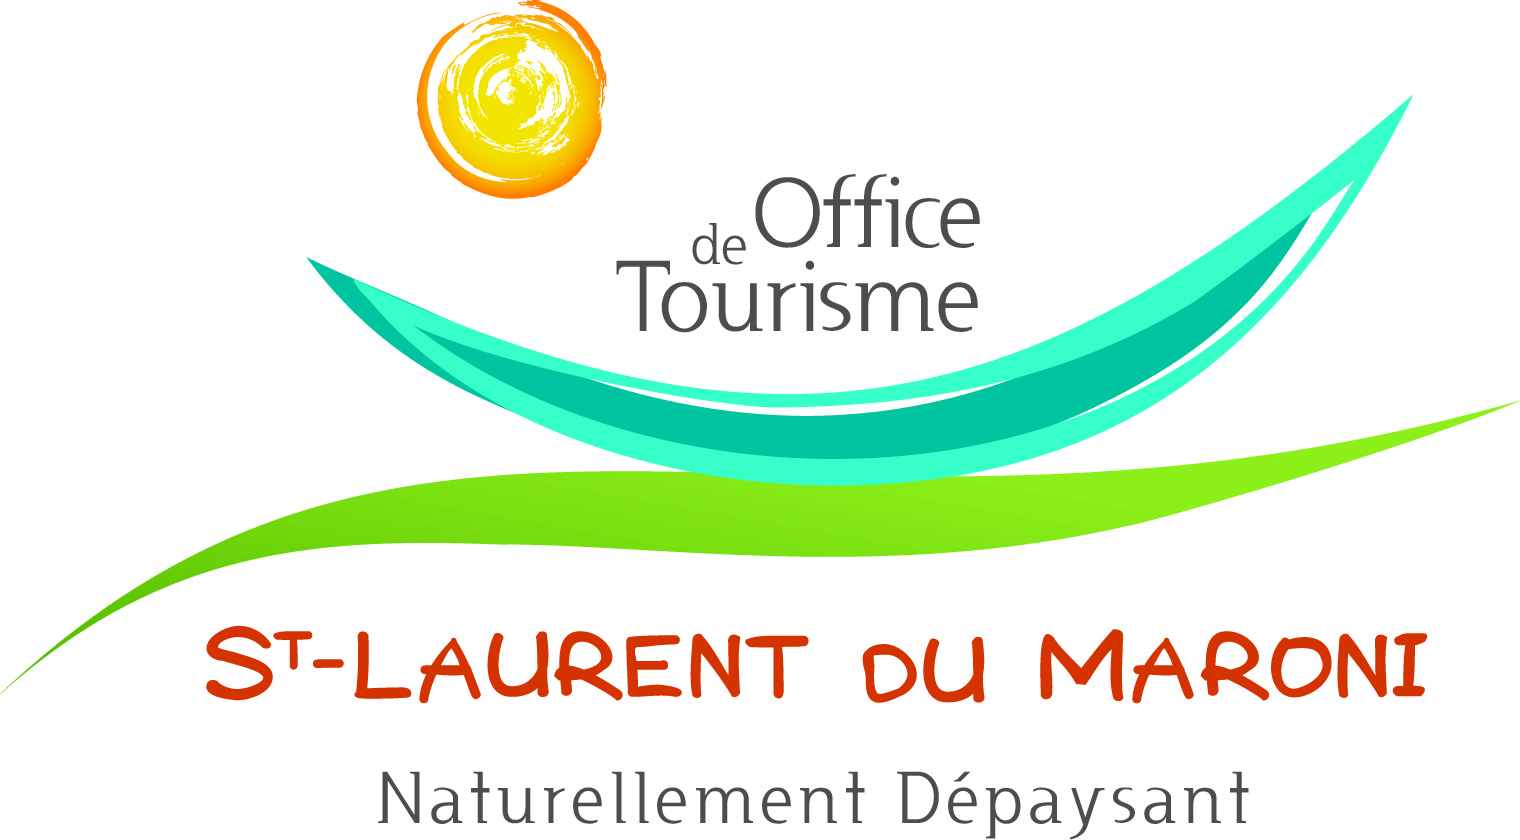 Office de tourisme de saint laurent du maroni saint laurent du maroni site internet du ctg - Office de tourisme anglais ...